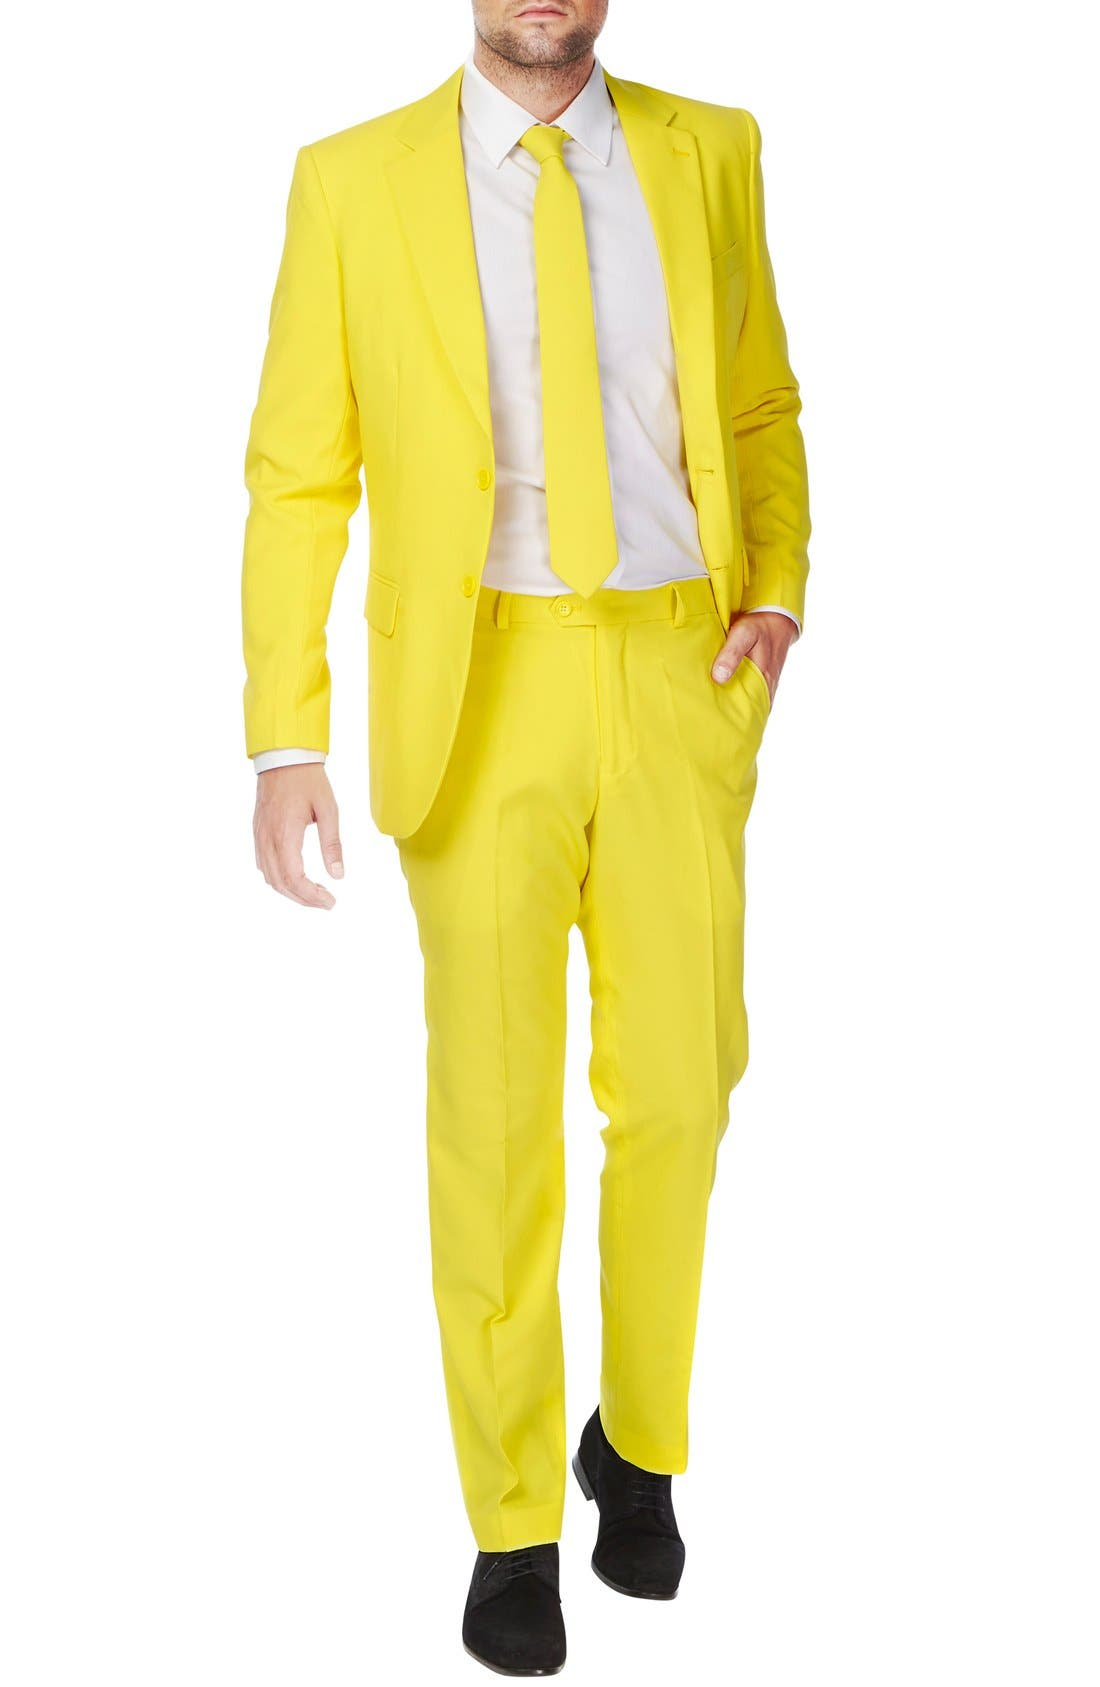 OppoSuits 'Yellow Fellow' Trim Fit Two-Piece Suit with Tie